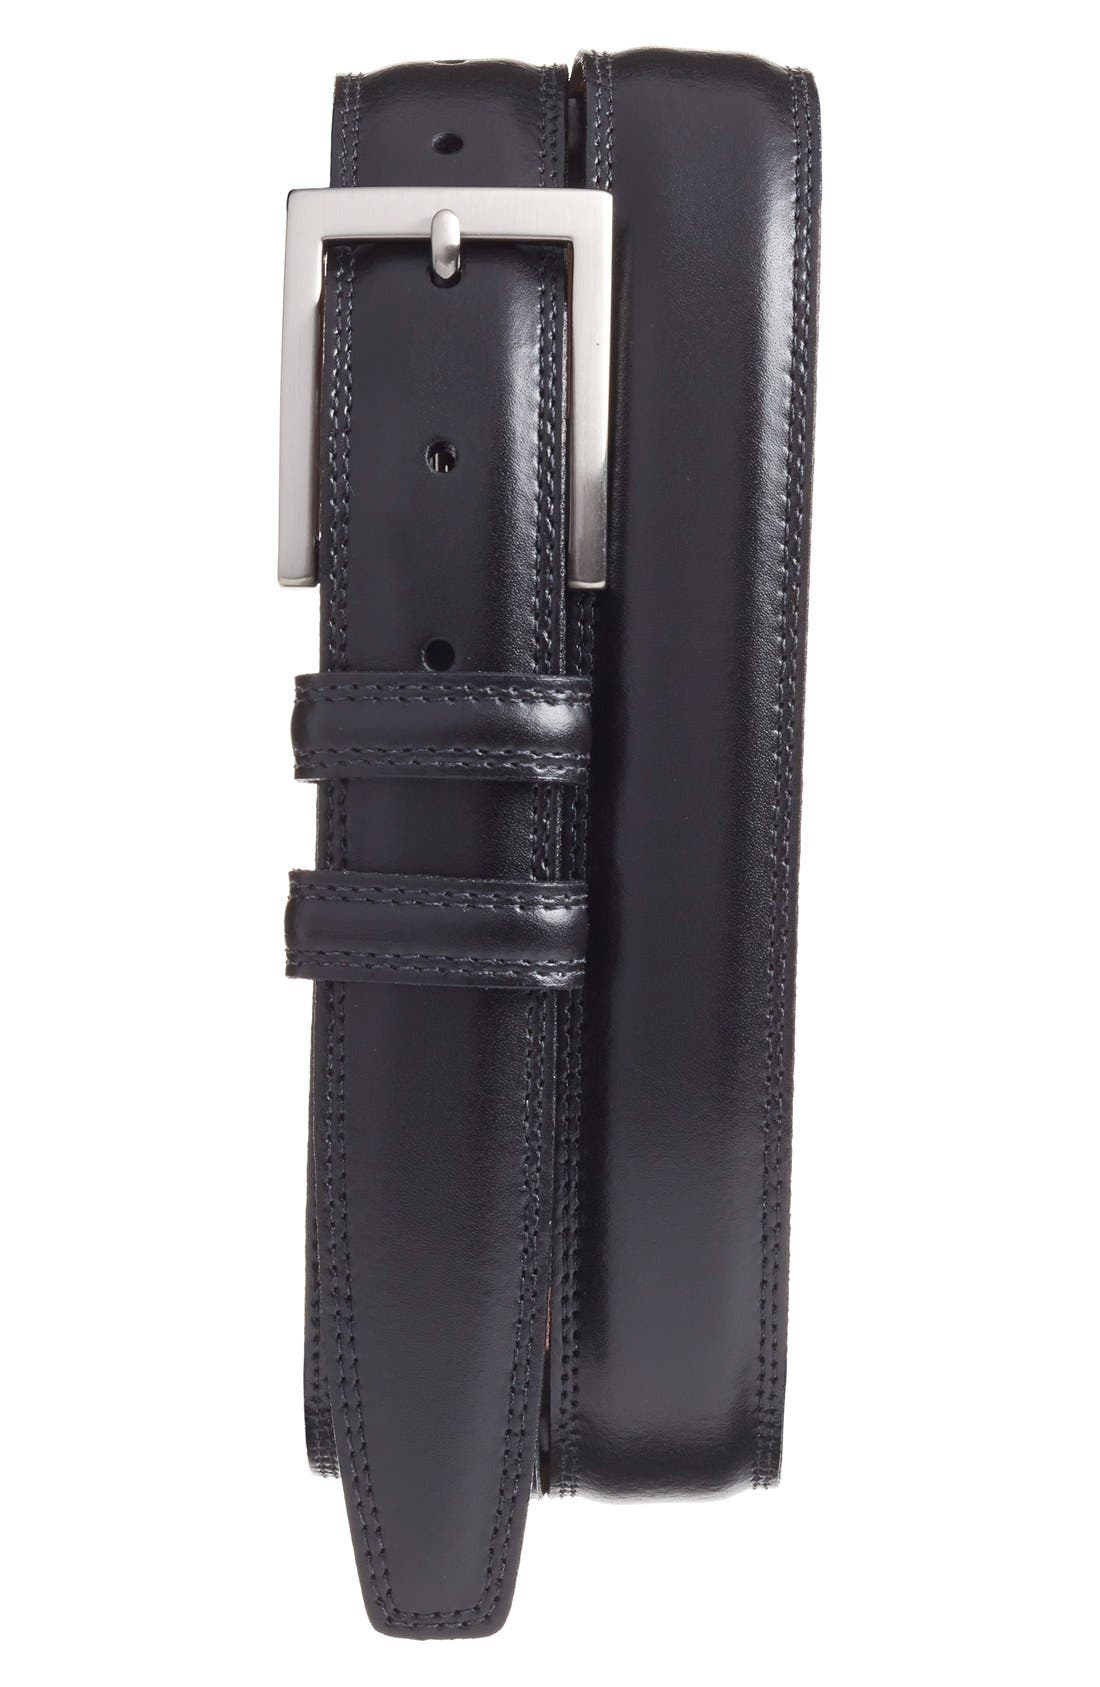 Main Image - Torino Belts Aniline Leather Belt